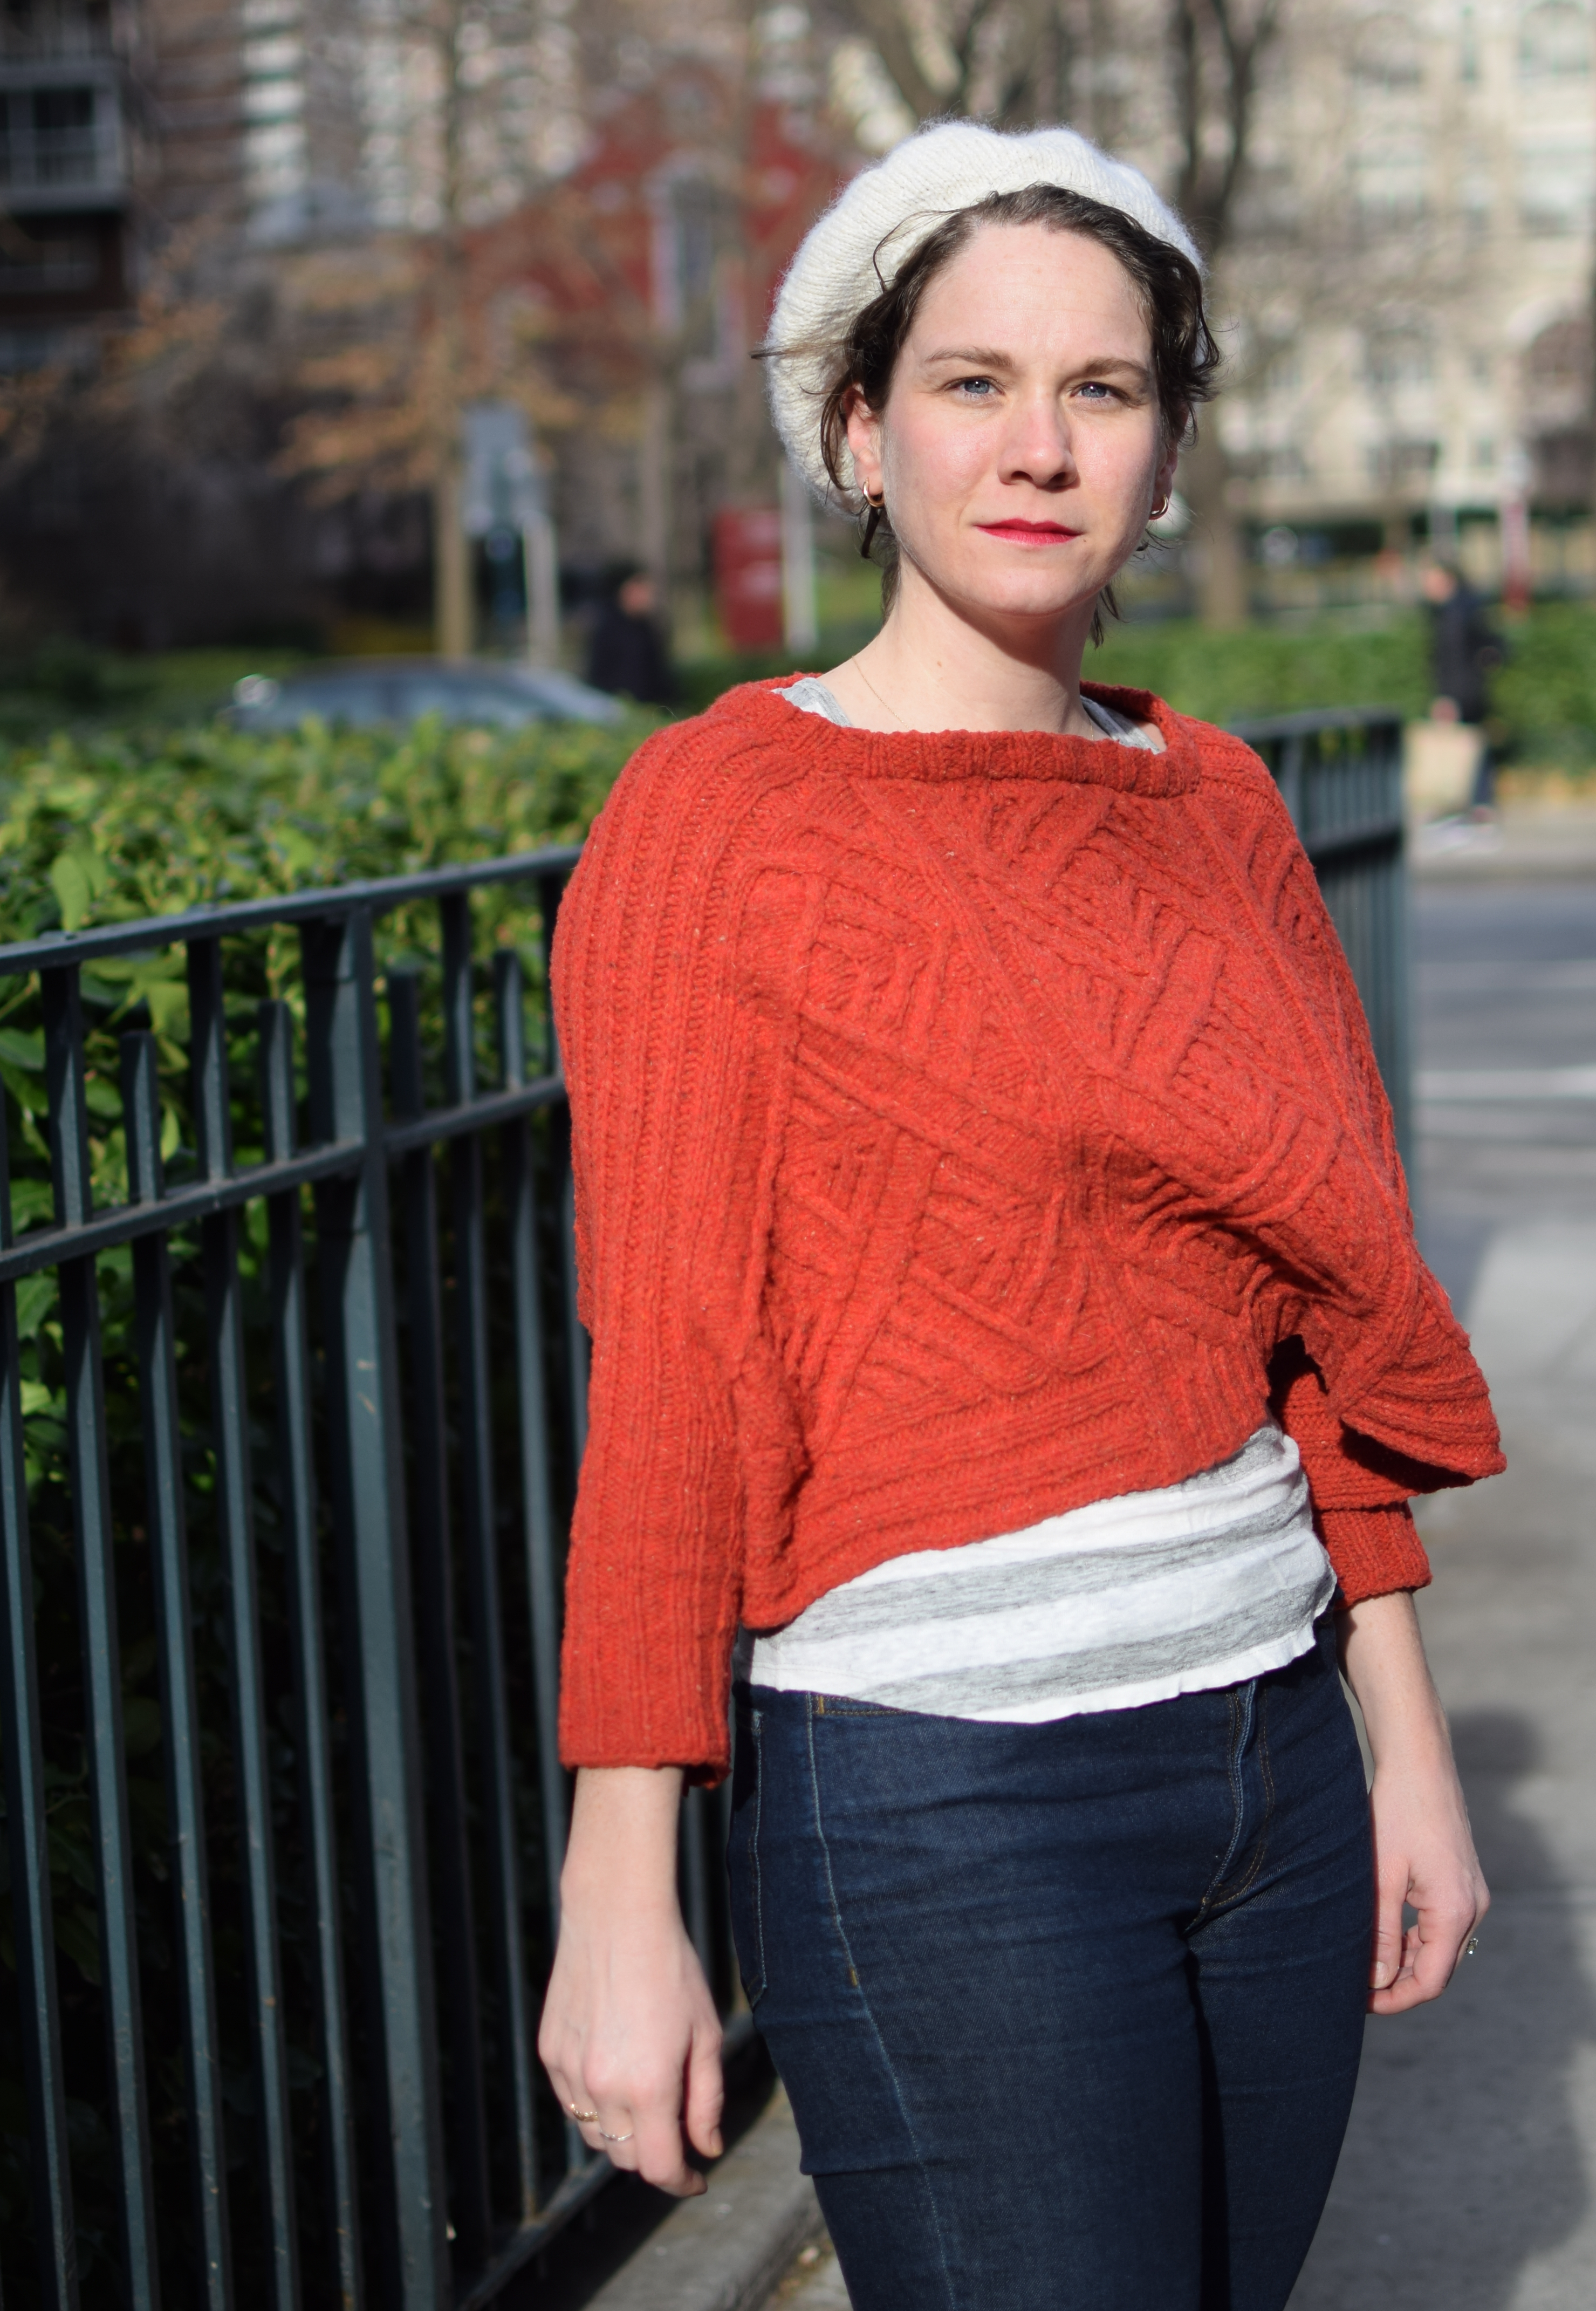 a woman poses on a windy day in a red sweater.